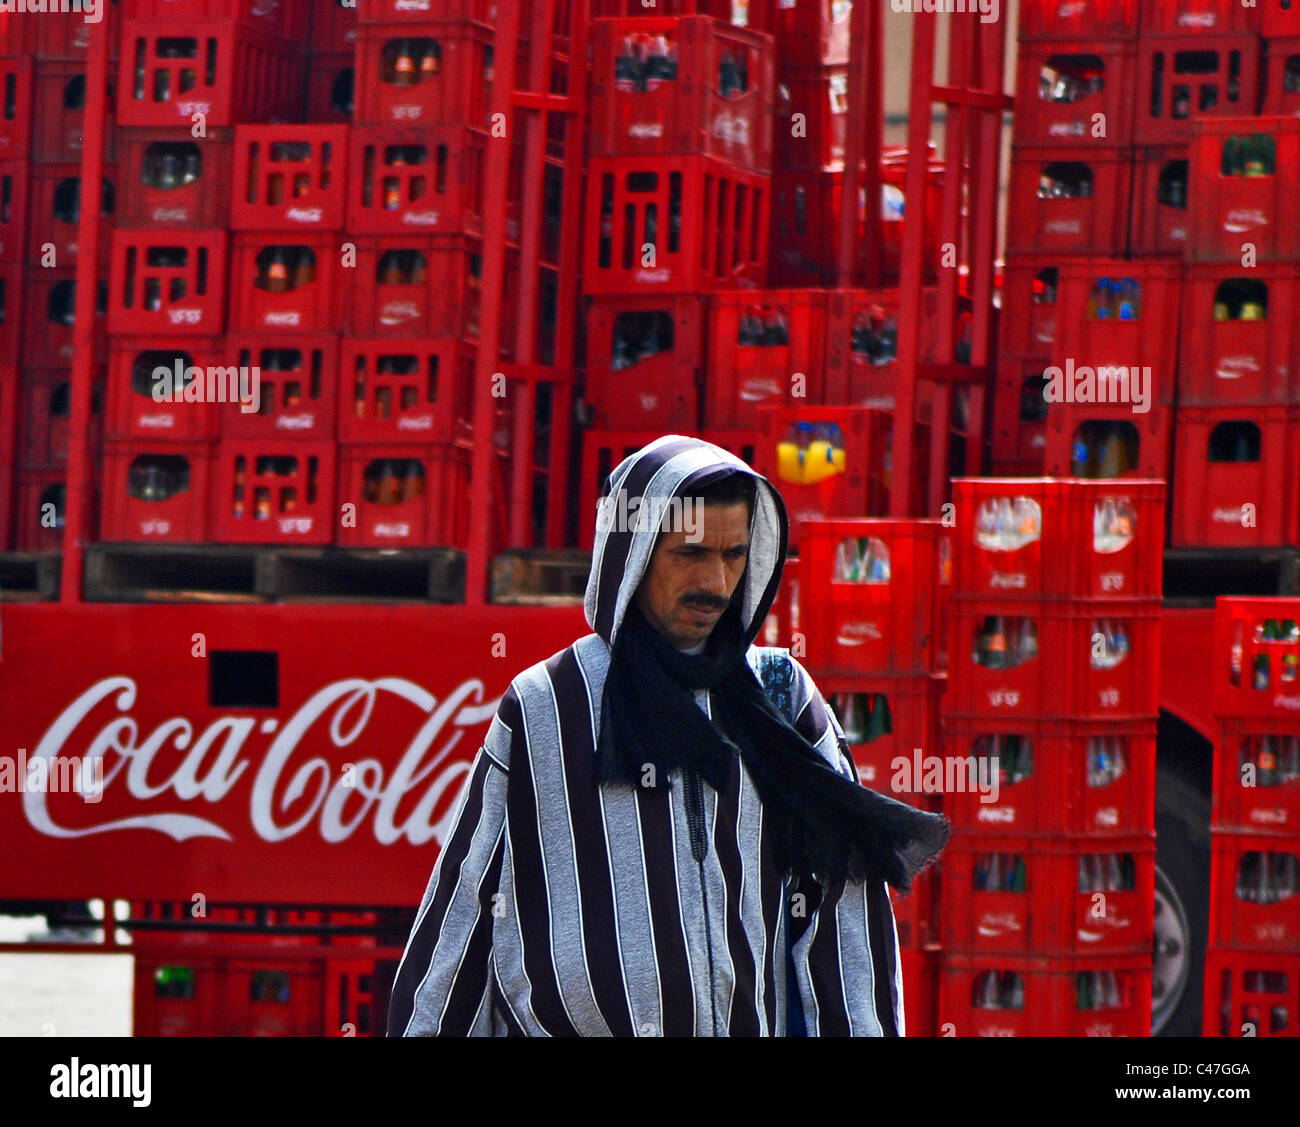 Globalization. Coca Cola truck and arab man in traditional dress. Marrakesh, Morocco - Stock Image